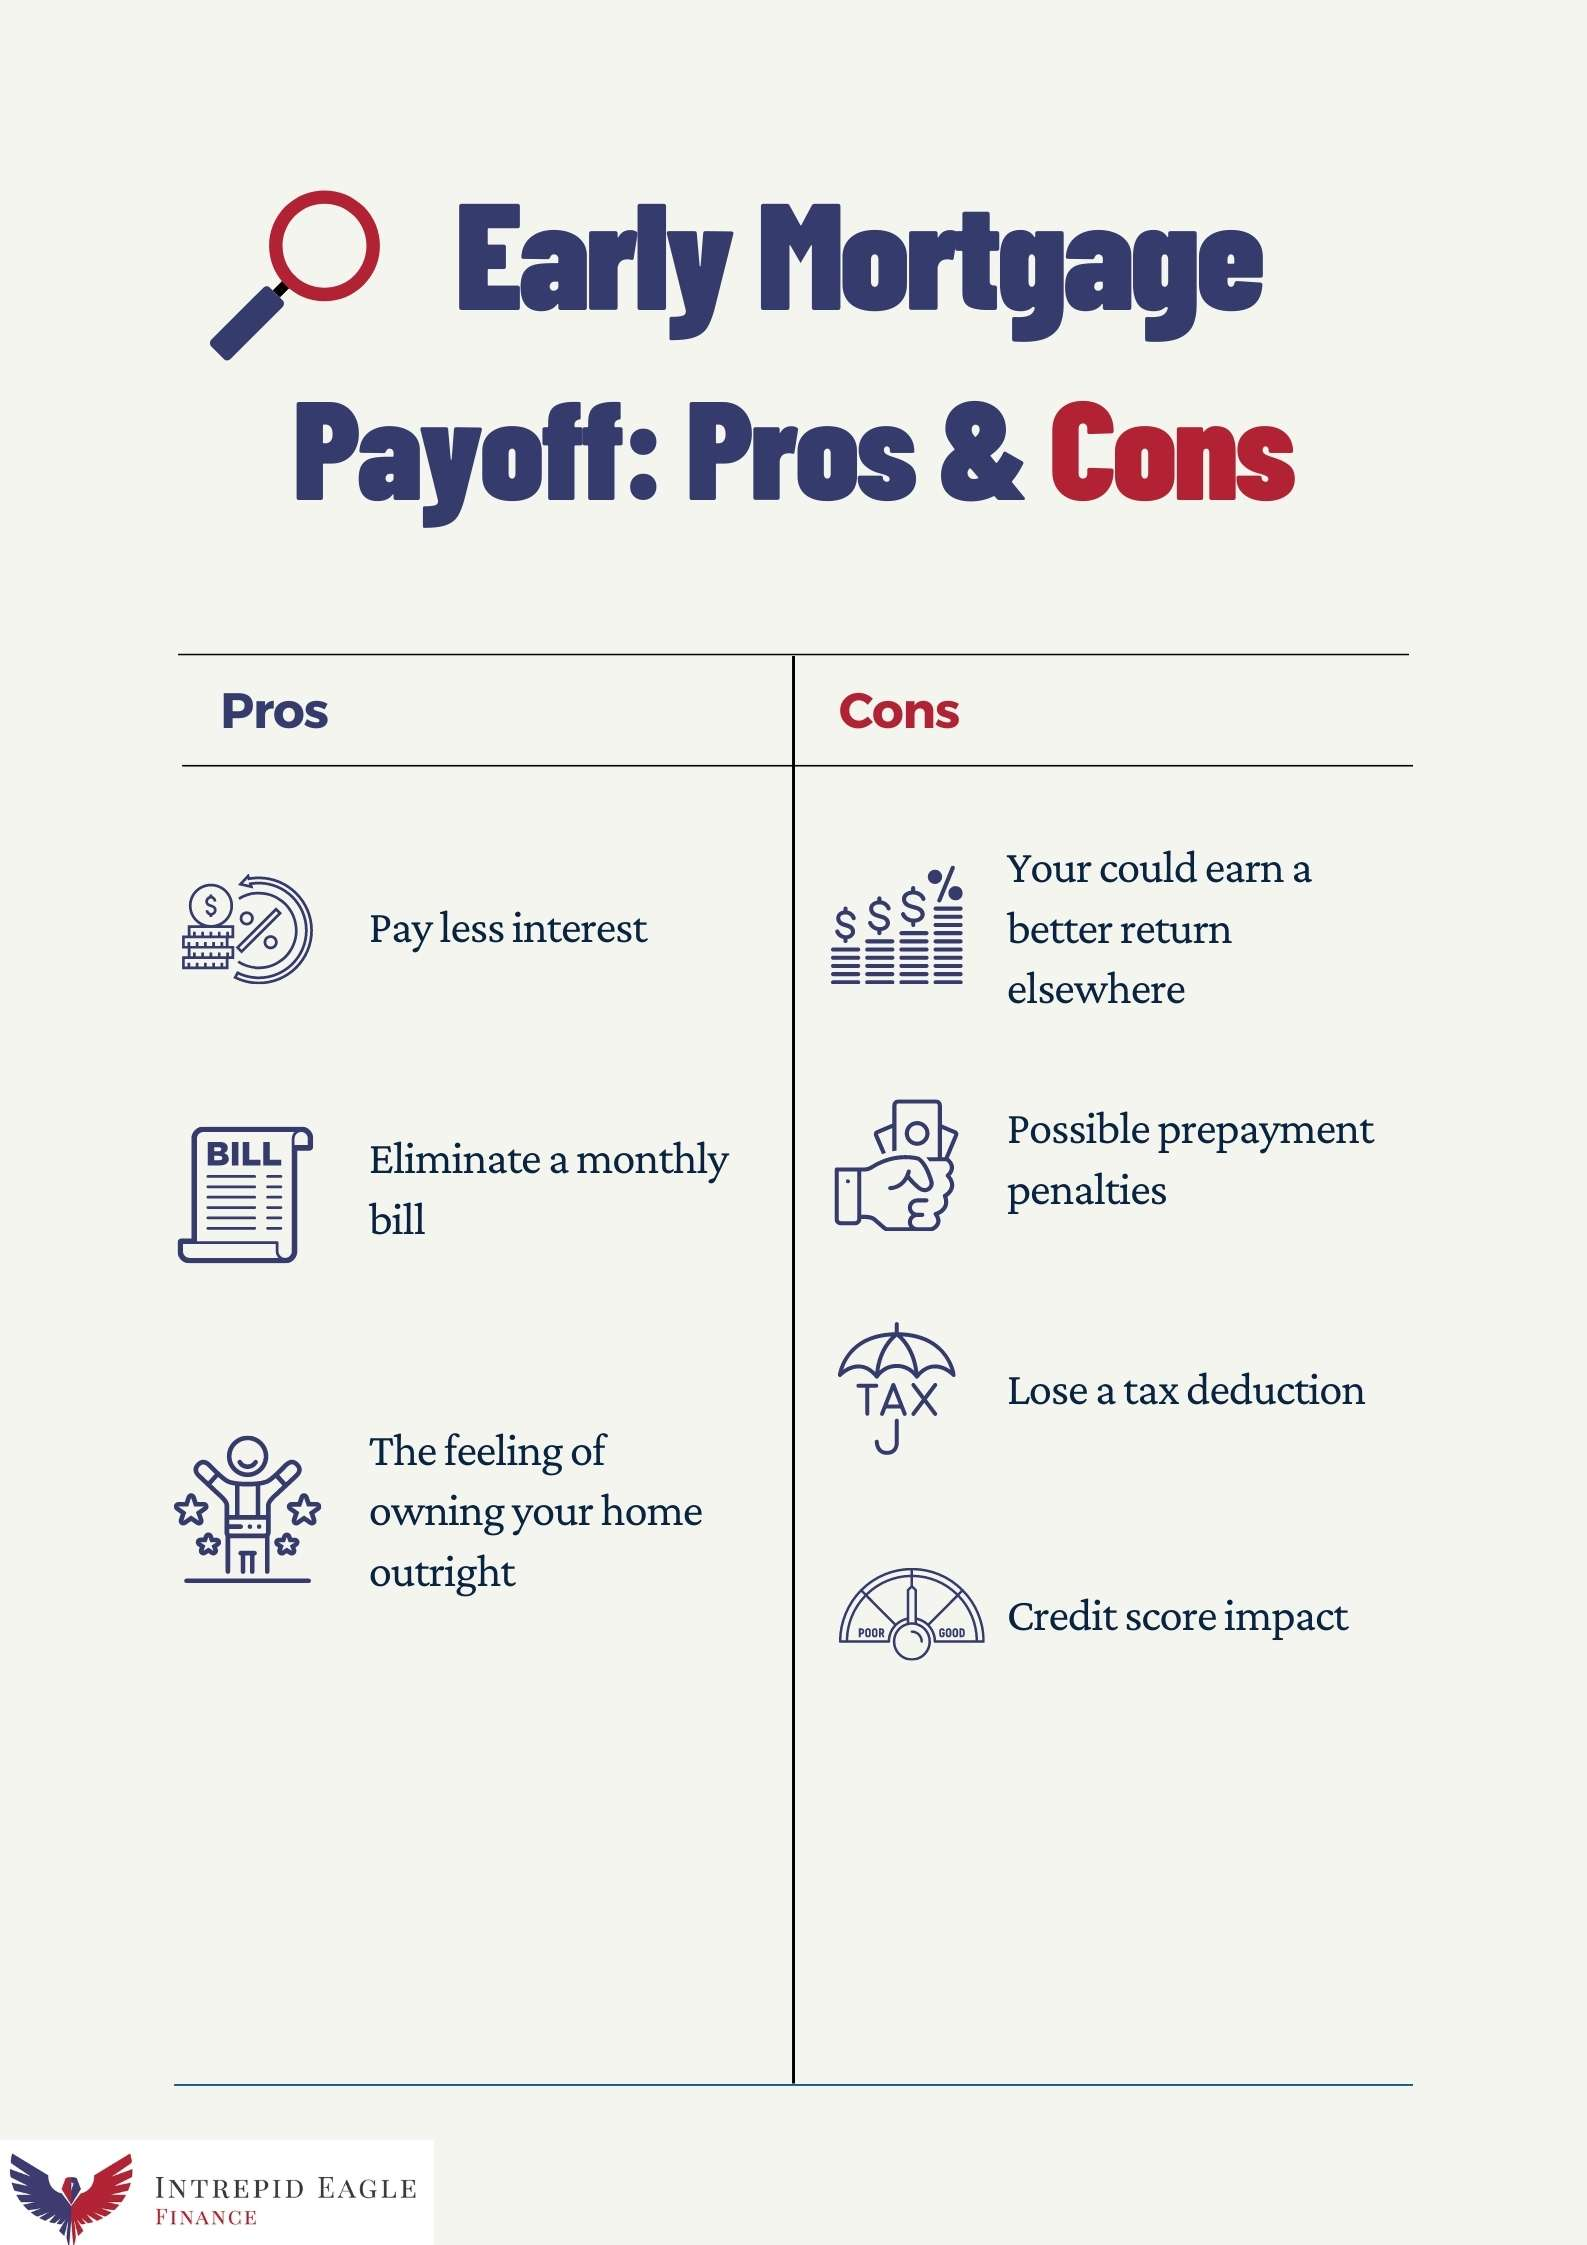 Pros and Cons of Early Mortgage Payoff